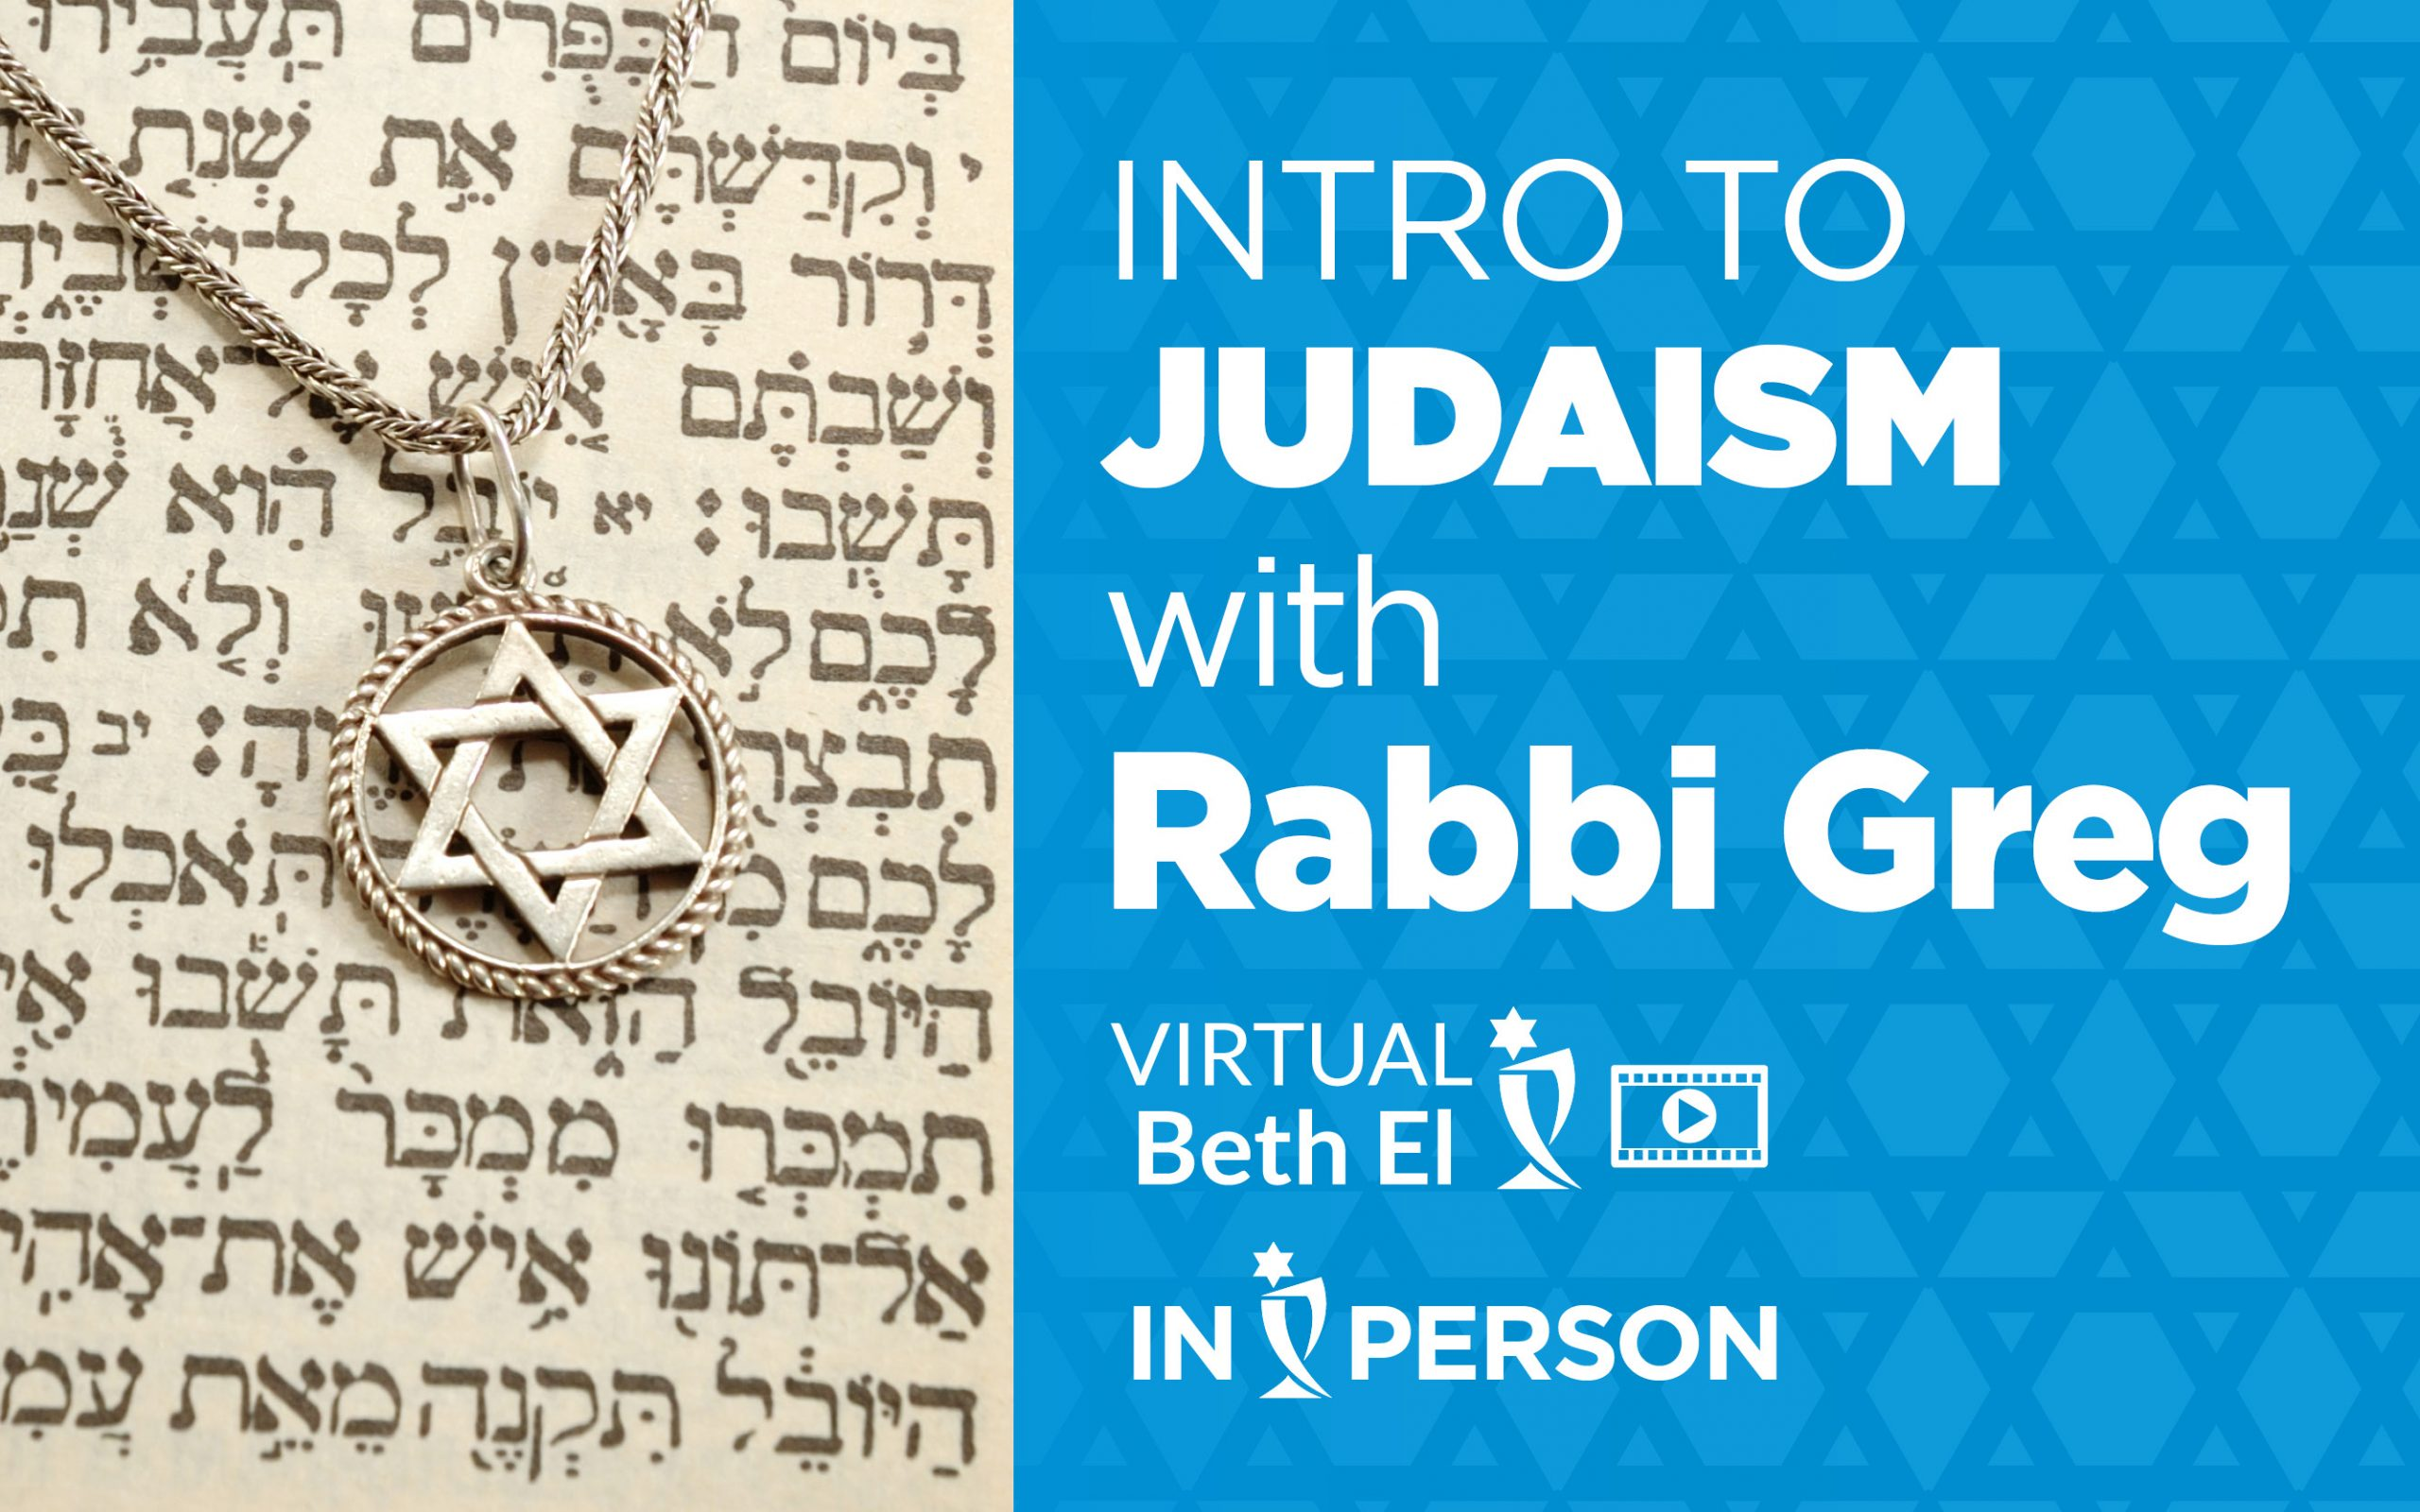 Introduction to Judaism class event graphic for Temple Beth El of Boca Raton